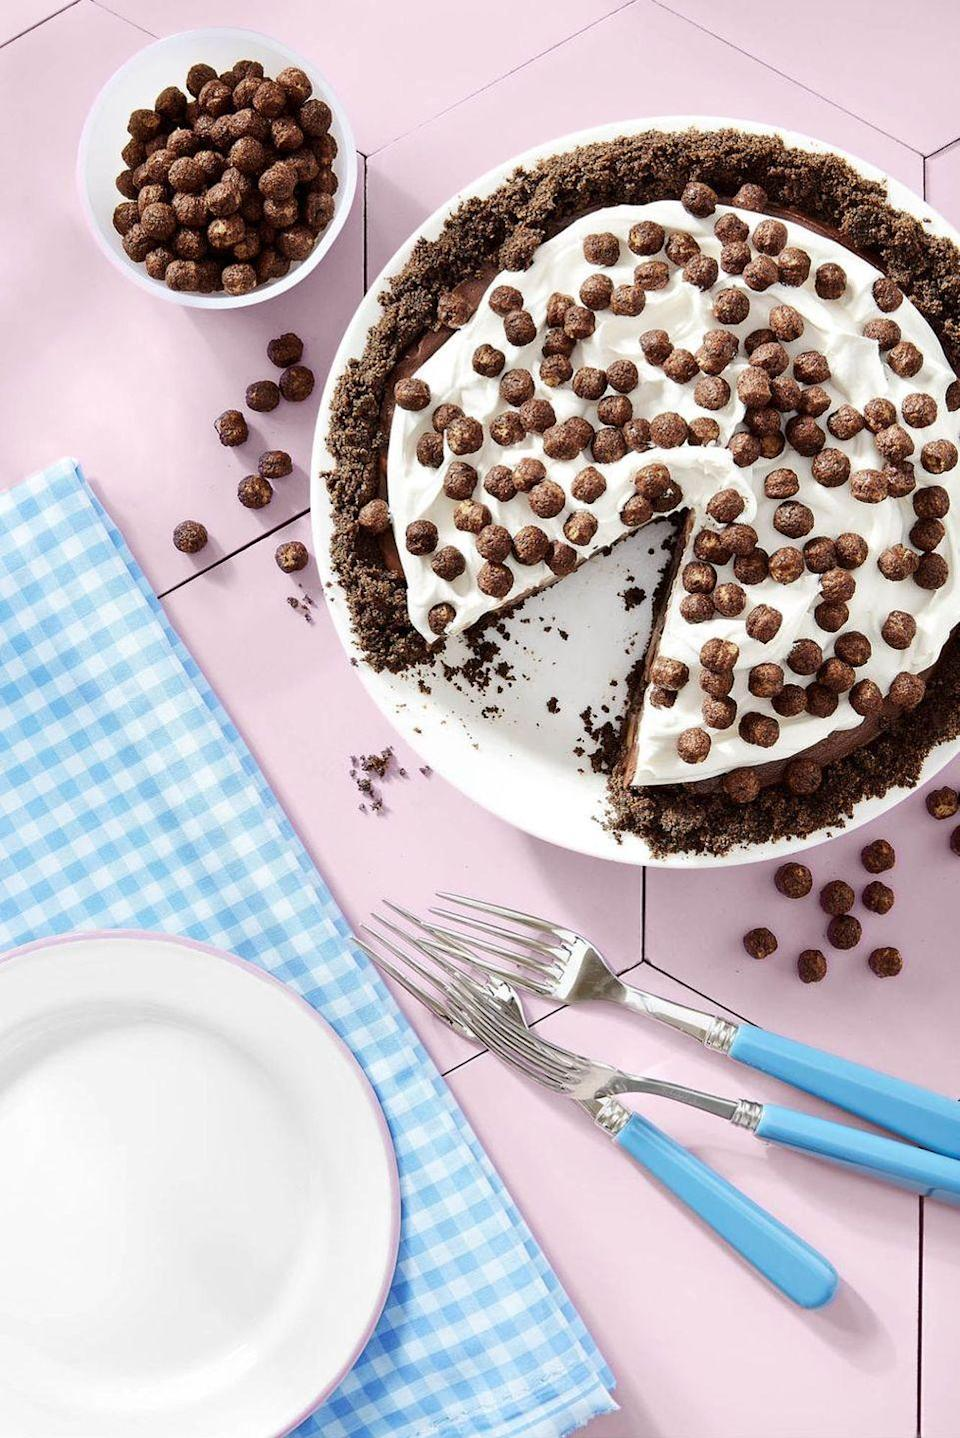 """<p>There are sliced bananas hiding under the chocolatey filling.</p><p><em><a href=""""https://www.countryliving.com/food-drinks/recipes/a46350/cocoa-puffs-and-banana-pie-recipe/"""" rel=""""nofollow noopener"""" target=""""_blank"""" data-ylk=""""slk:Get the recipe from Country Living »"""" class=""""link rapid-noclick-resp"""">Get the recipe from Country Living »</a></em></p>"""